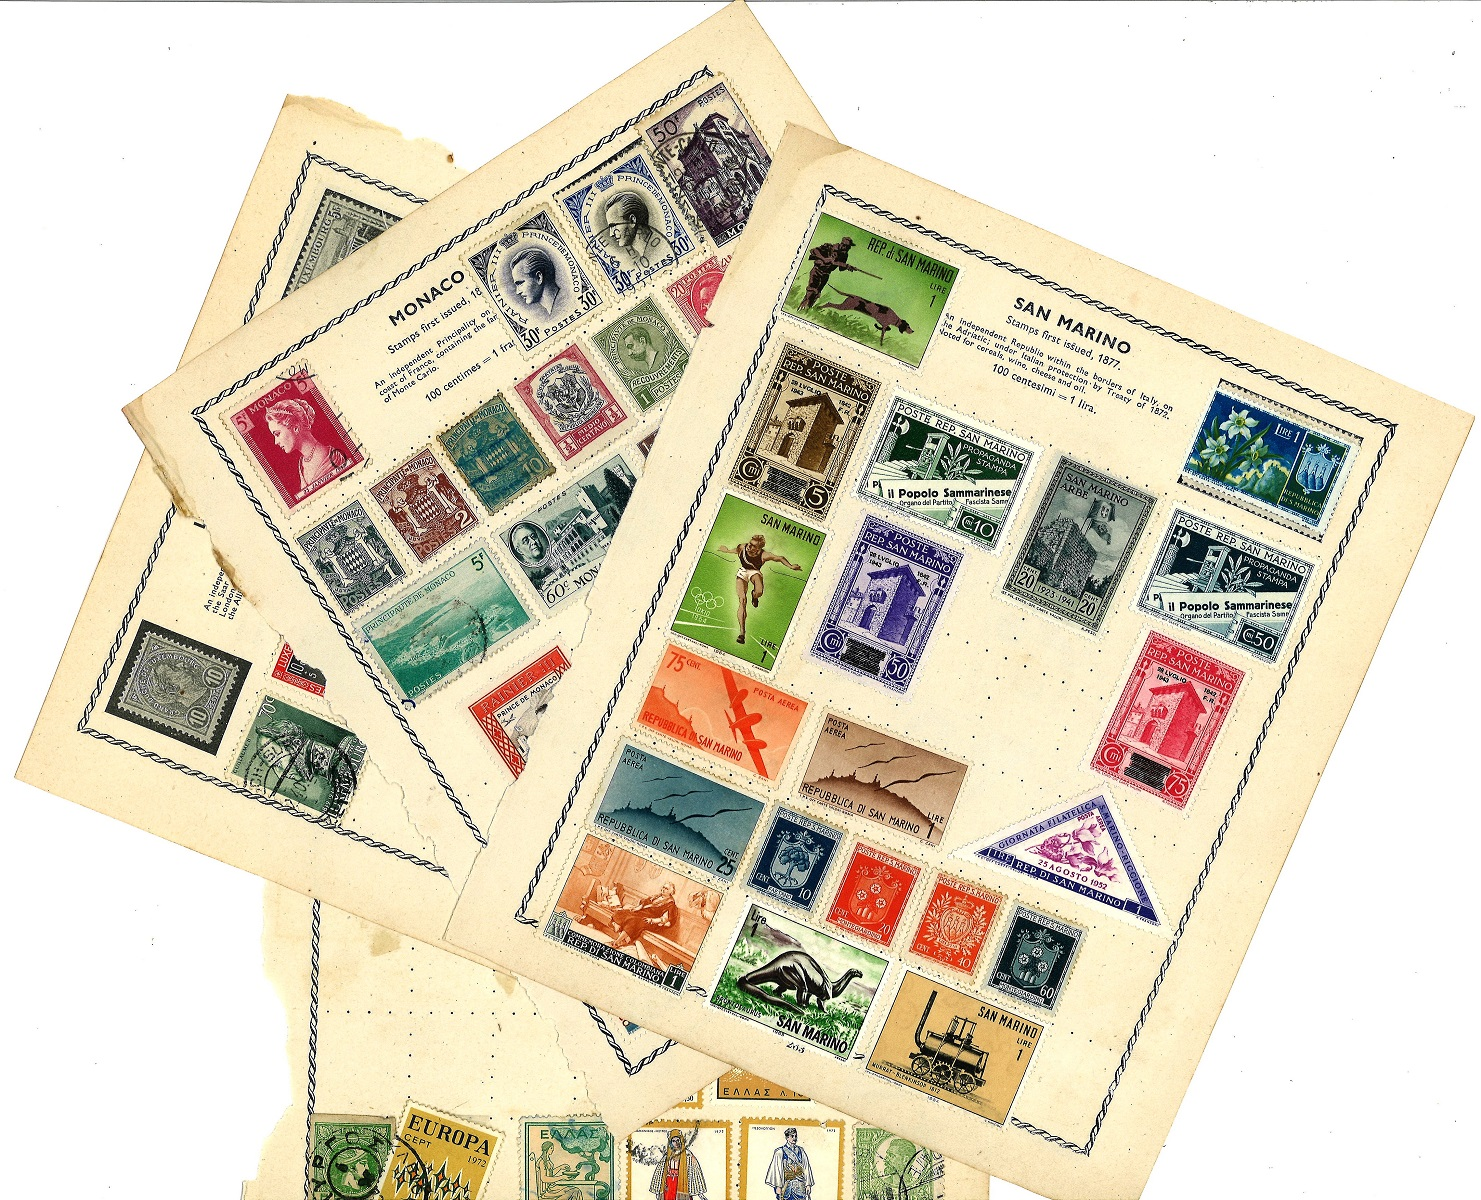 European stamp collection 7 loose album pages old stamps countries include San Marino, Monaco and